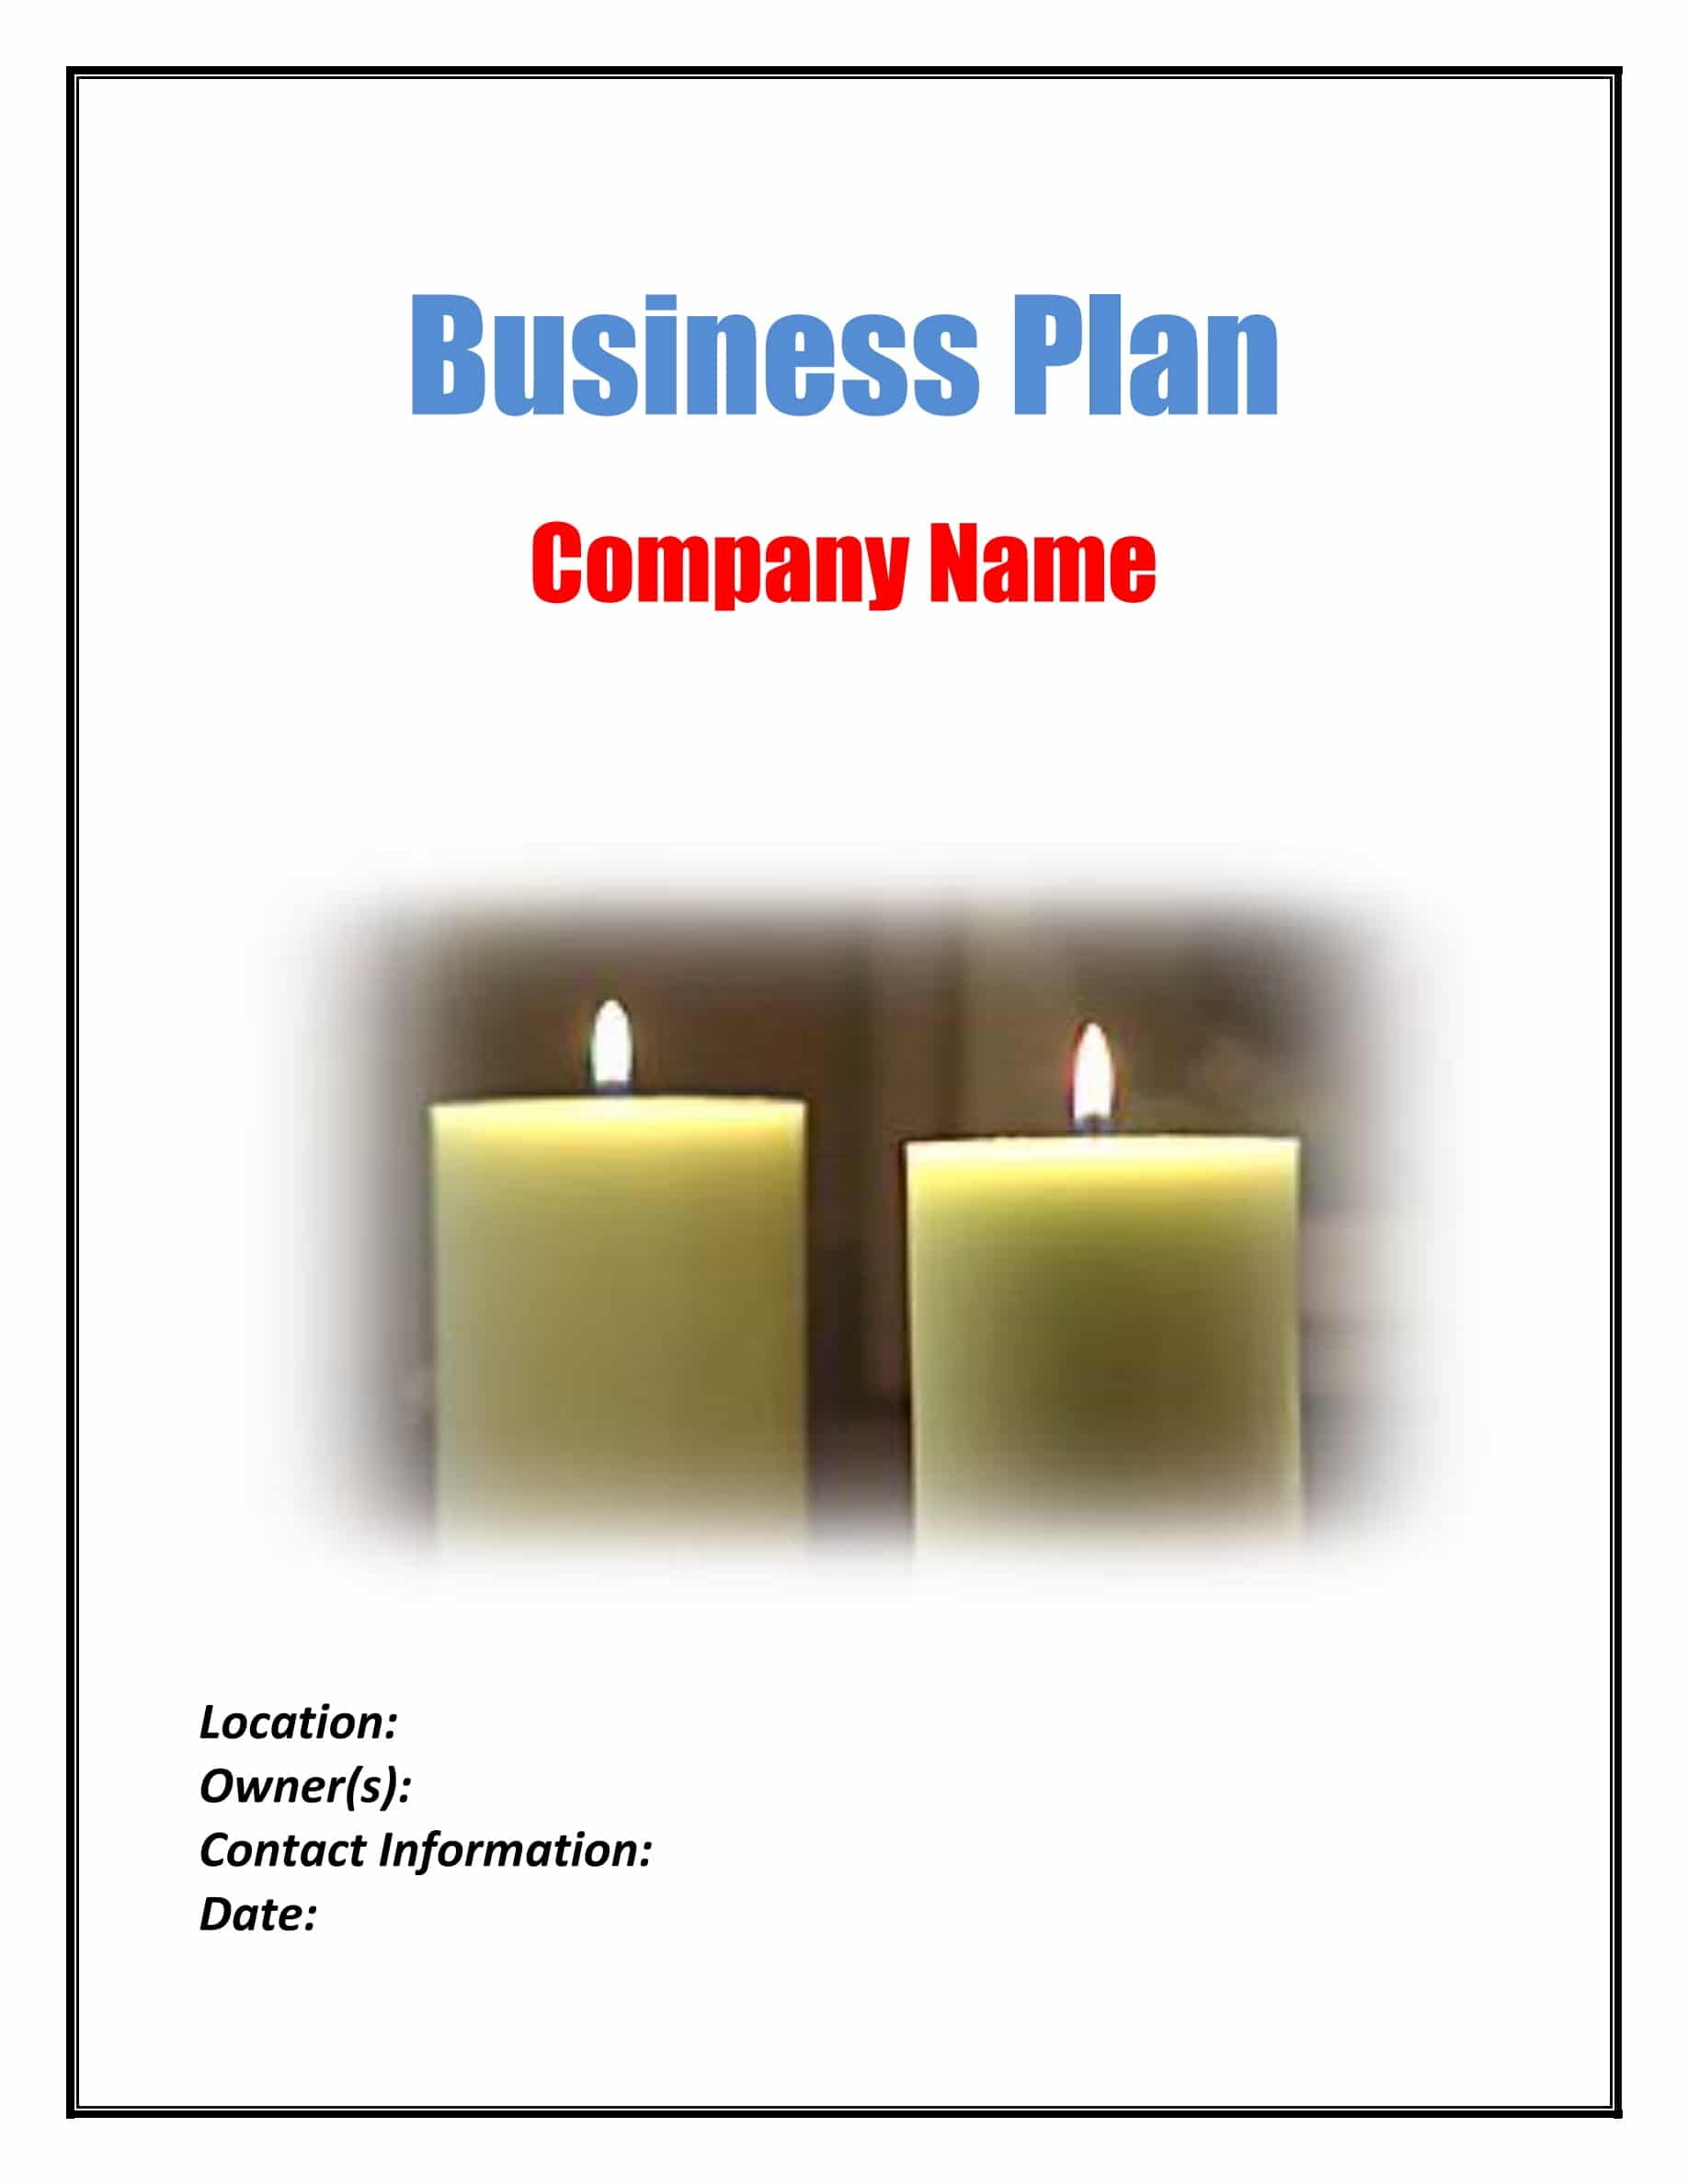 Candle Making Business Plan Template Sample Pages - Black